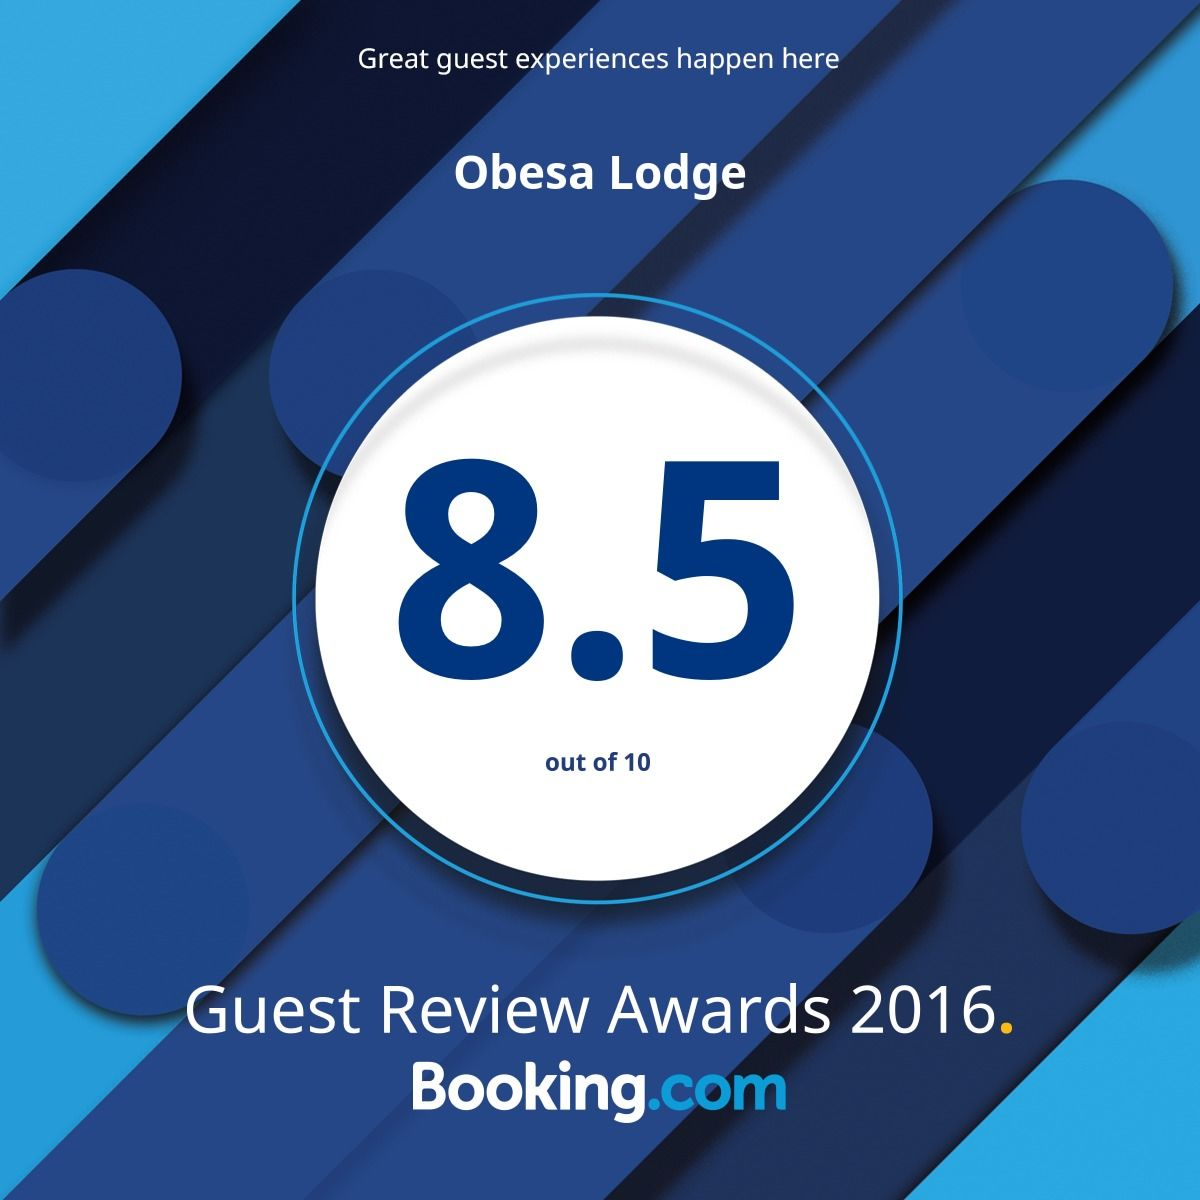 2016 Booking.com Guest Review Award